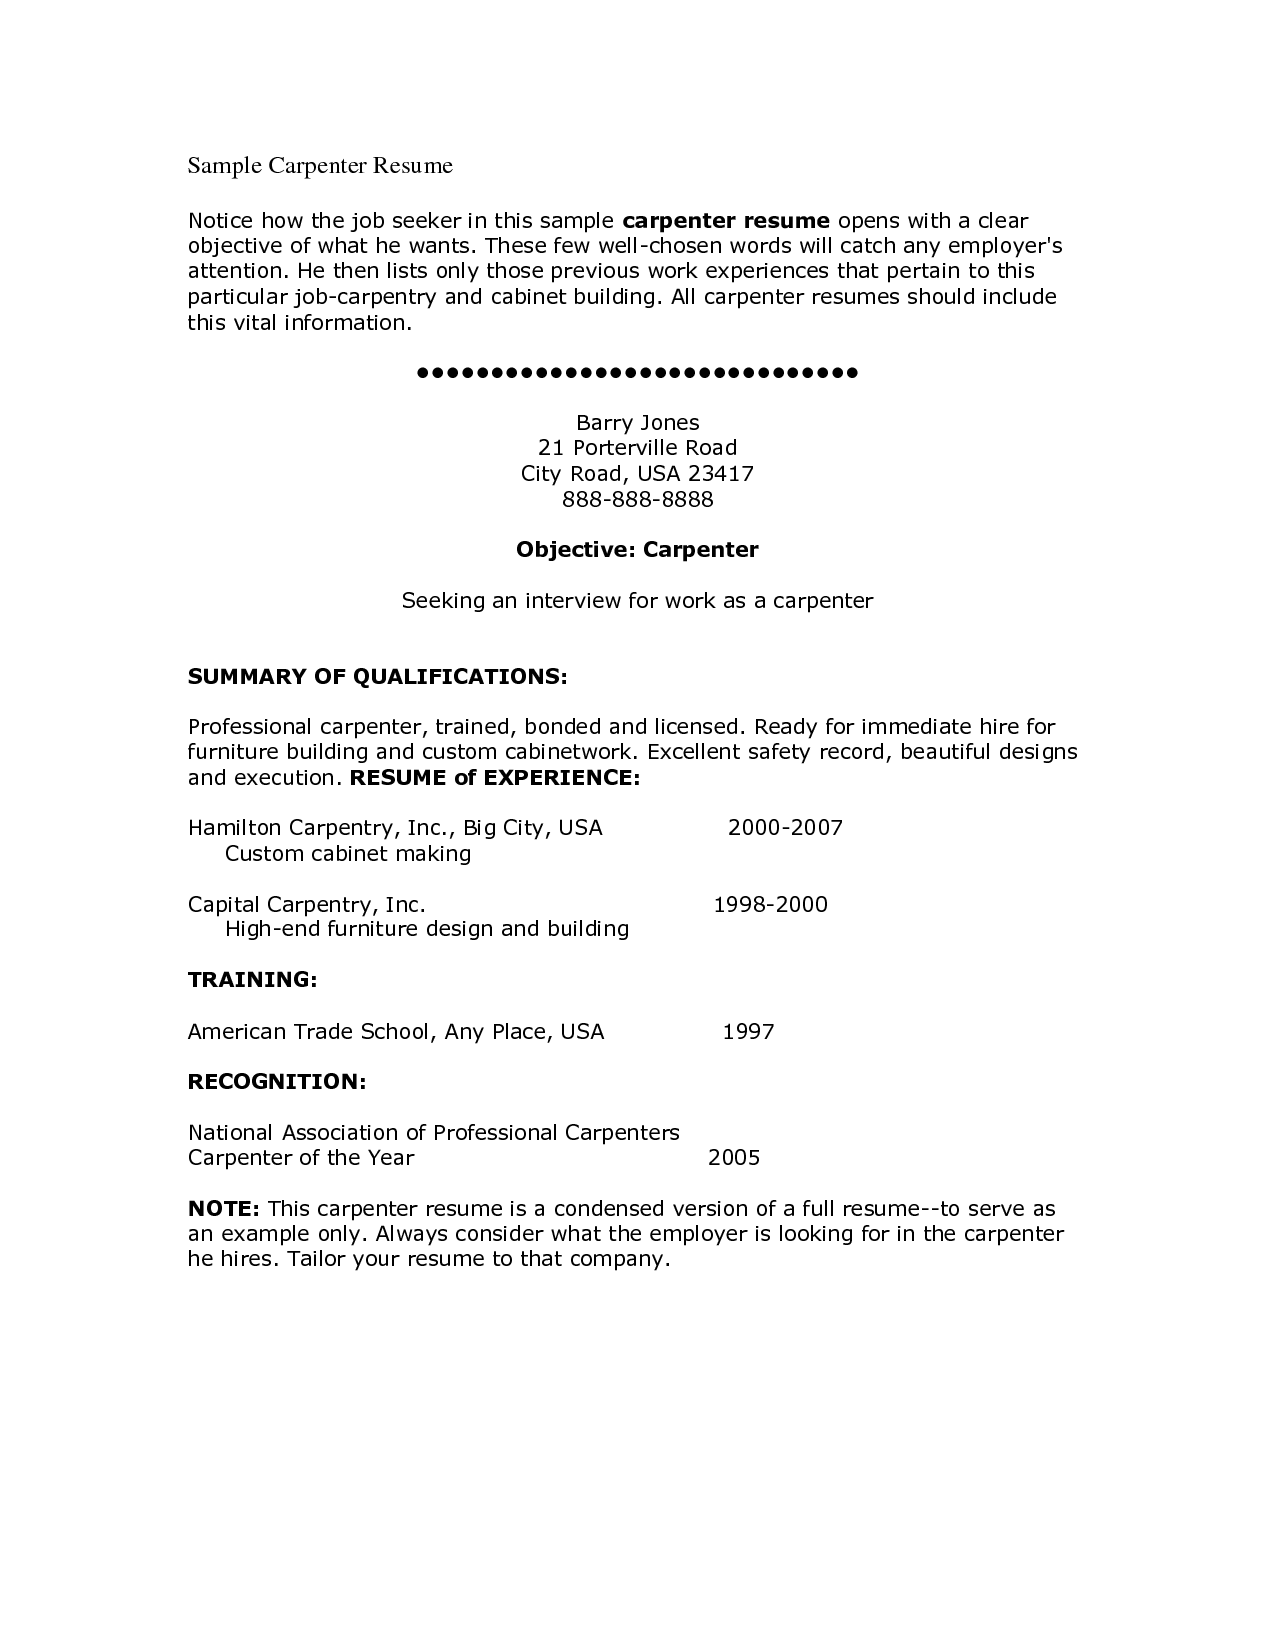 Sample Carpenter Resume Pleasing Construction Carpenter Resume Templatesrpenter Job Description For .